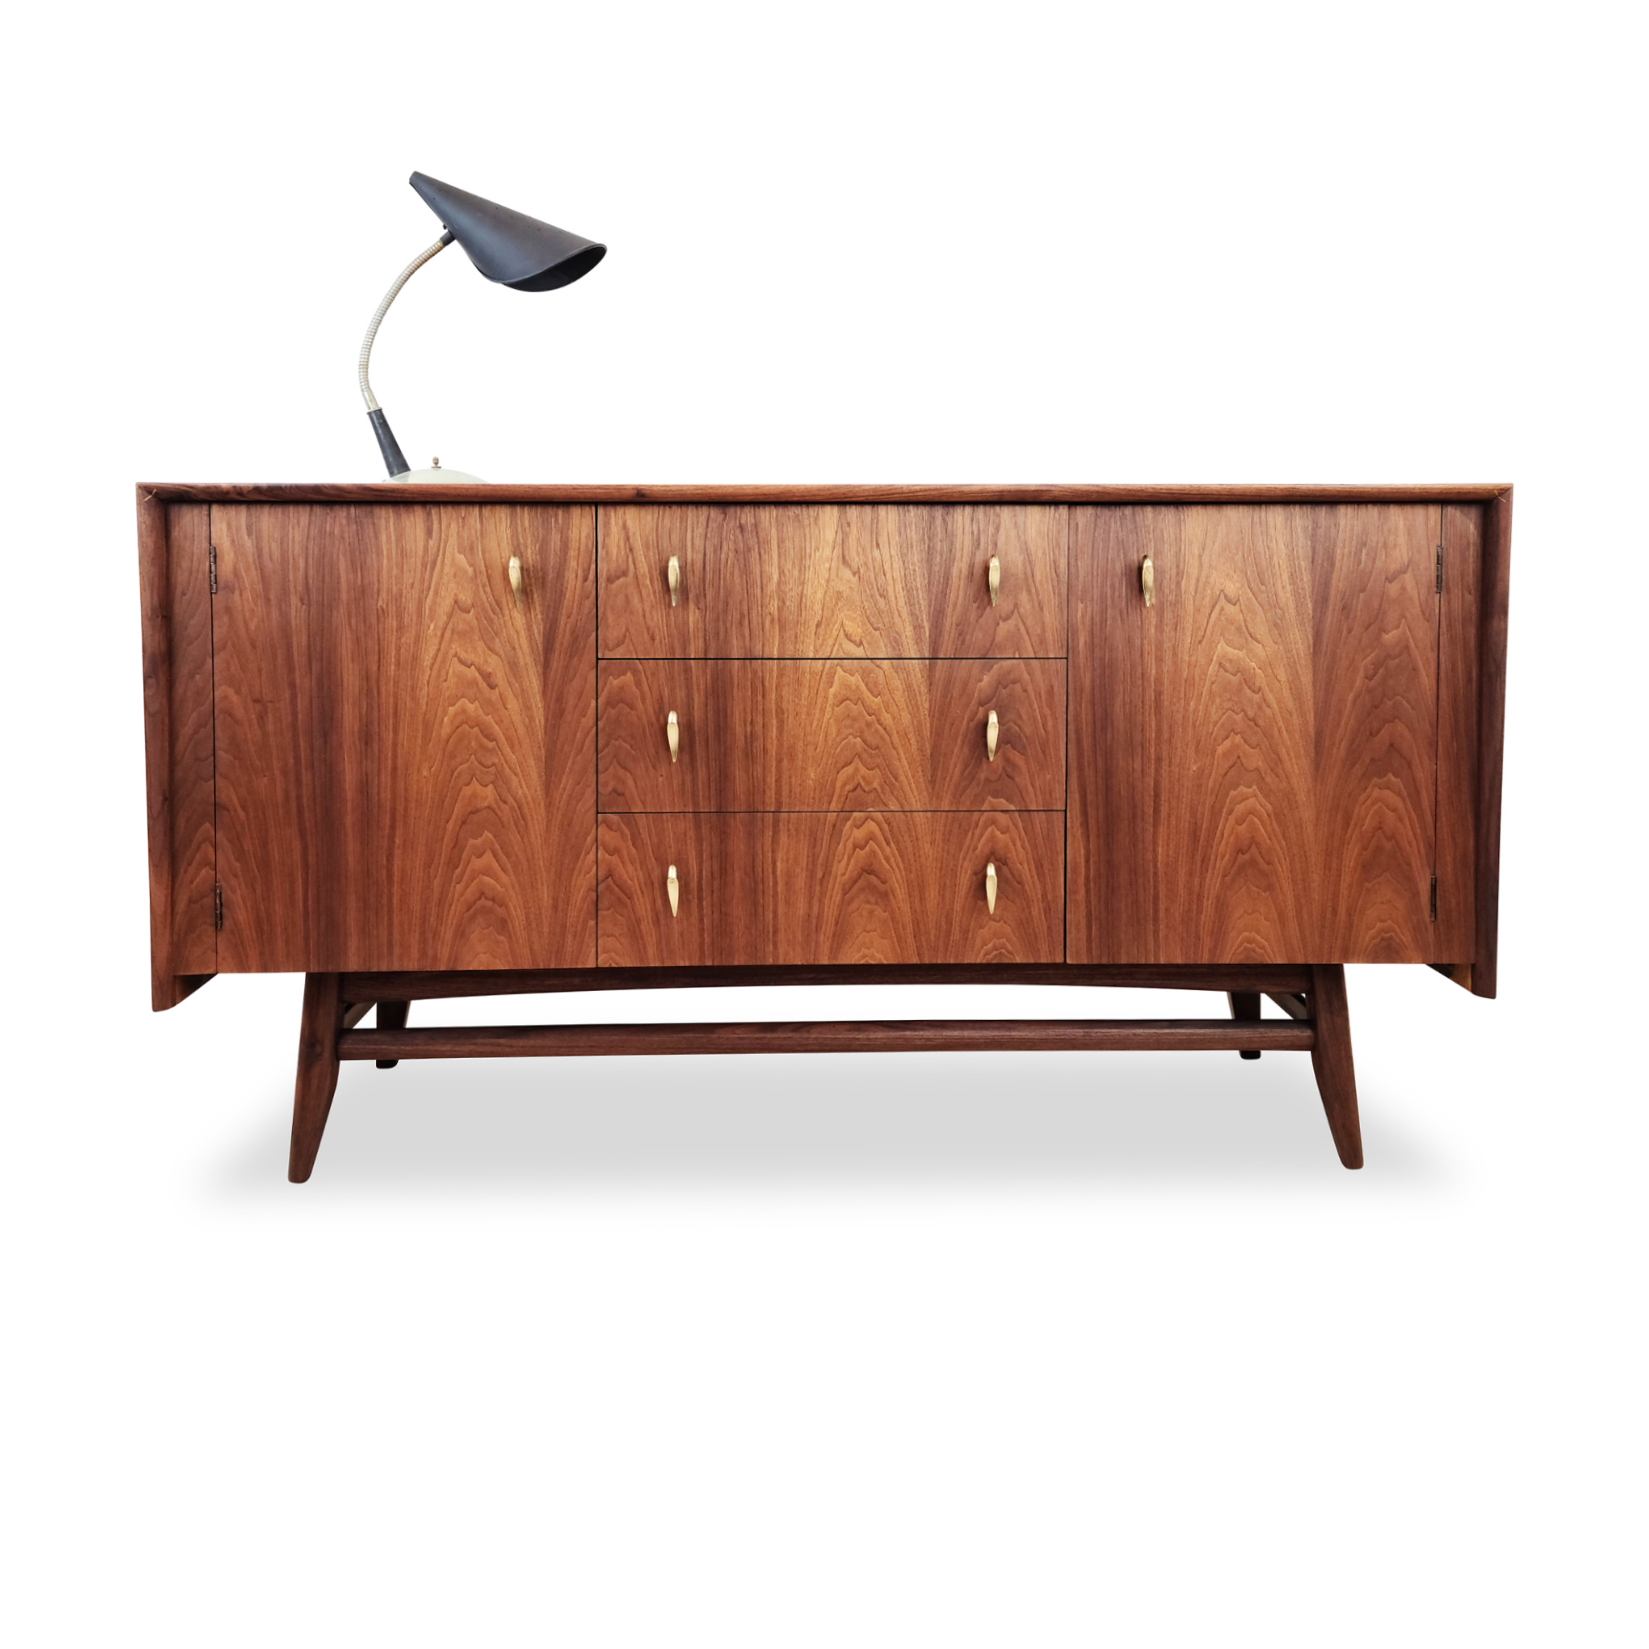 Walnut and Brass Sideboard by Russell Spanner